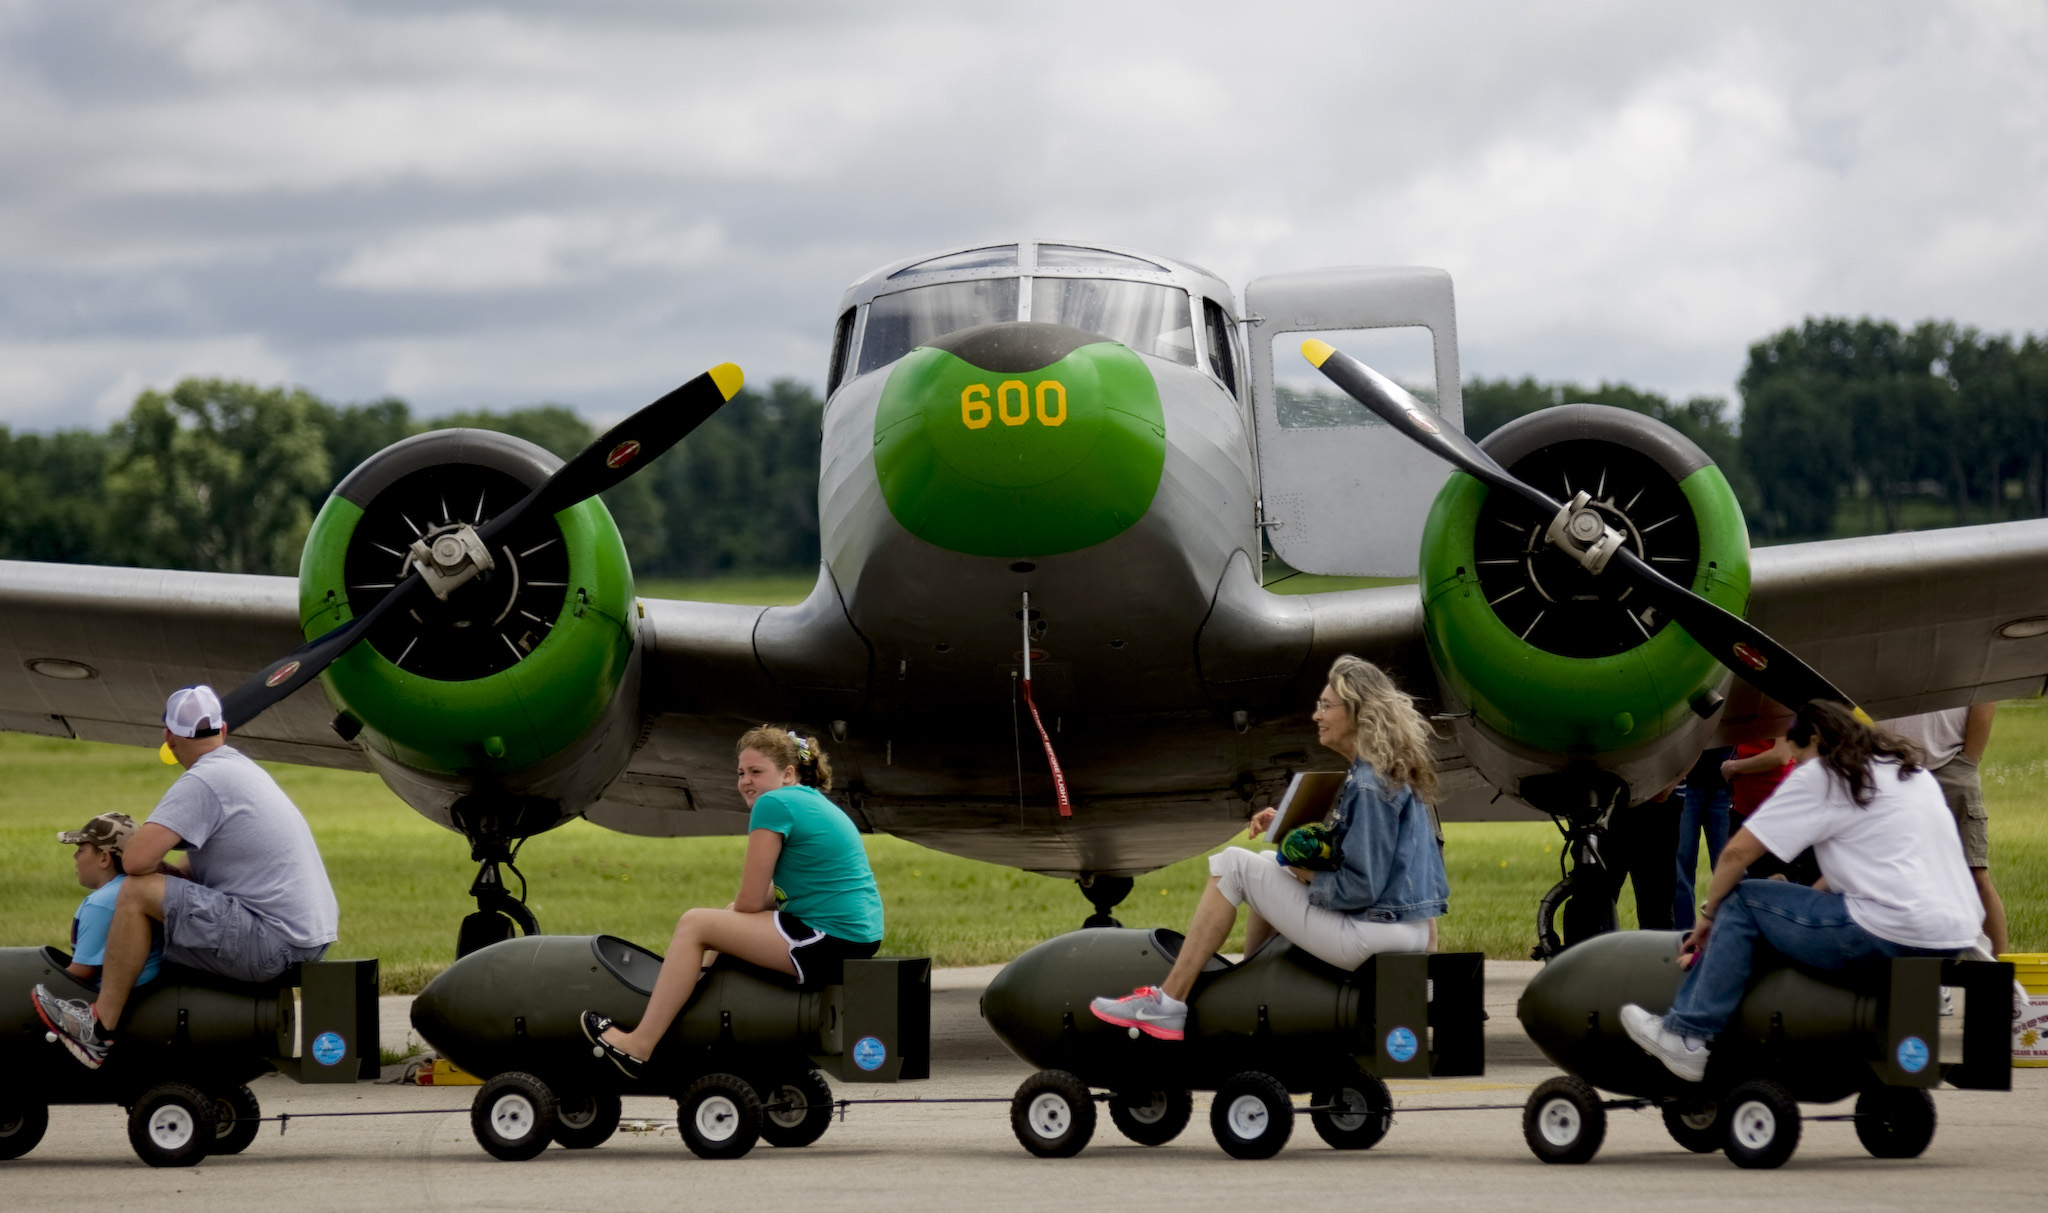 People on a wagon ride roll in front of a Cessna UC-78 Bobcat at the Commemorative Air Force Fly In event at Hutchinson Airport on Saturday, June 7, 2014, in Hutchinson, Kansas. The event included vintage aircraft, music, games and displays.